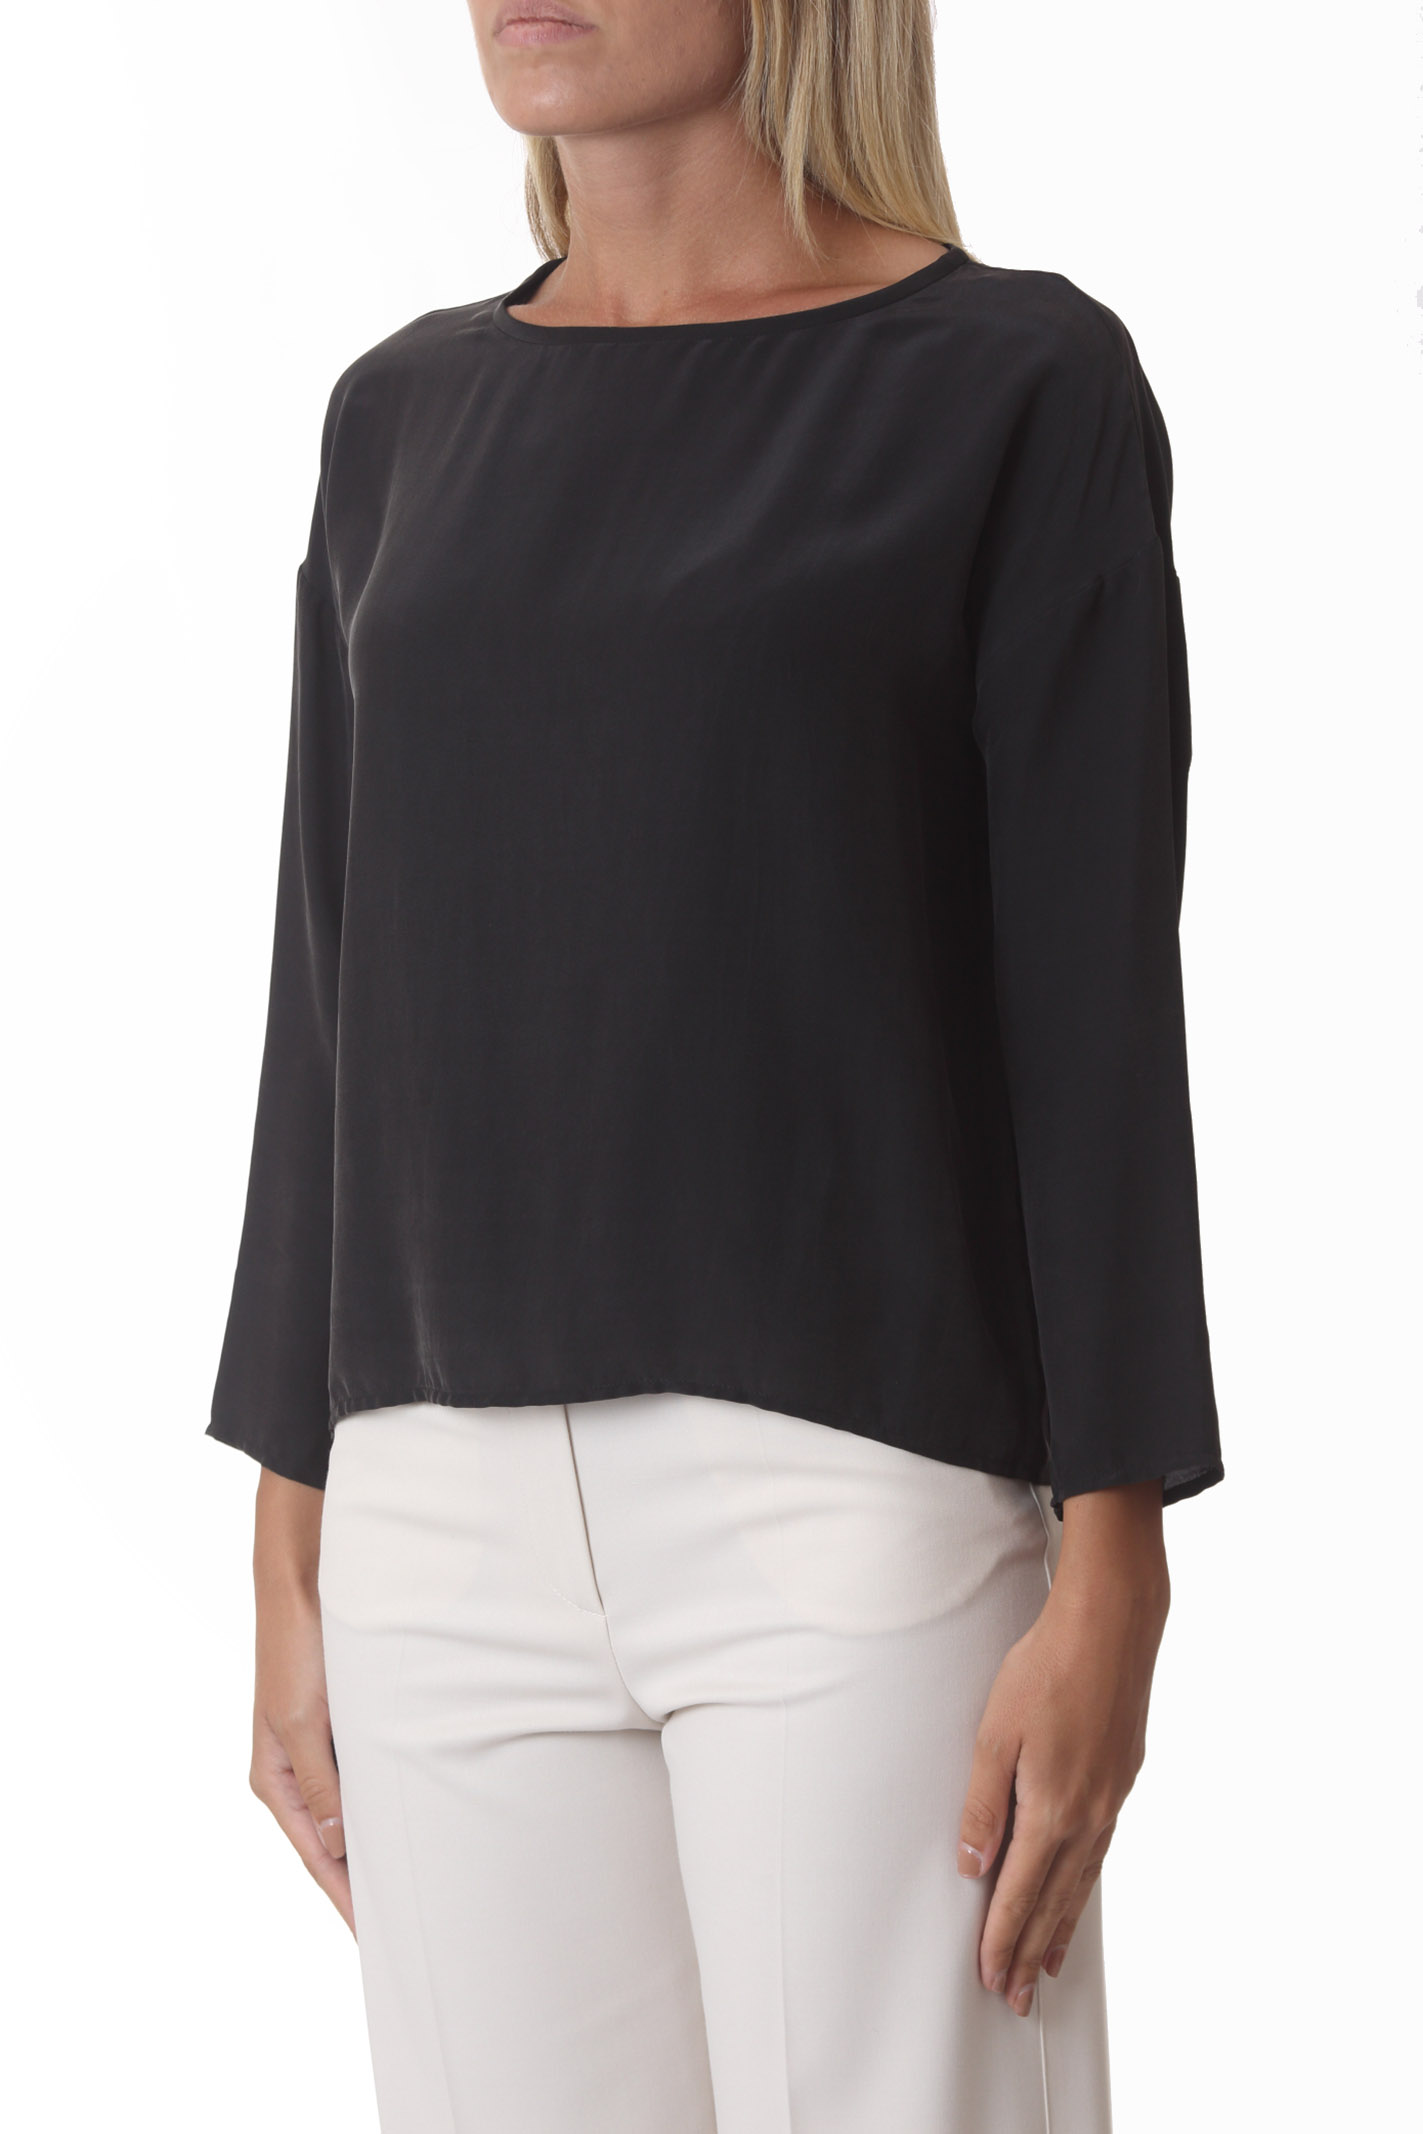 Blusa donna Alonso ATTIC AND BARN   Bluse   A21-ATBL004-AT160990